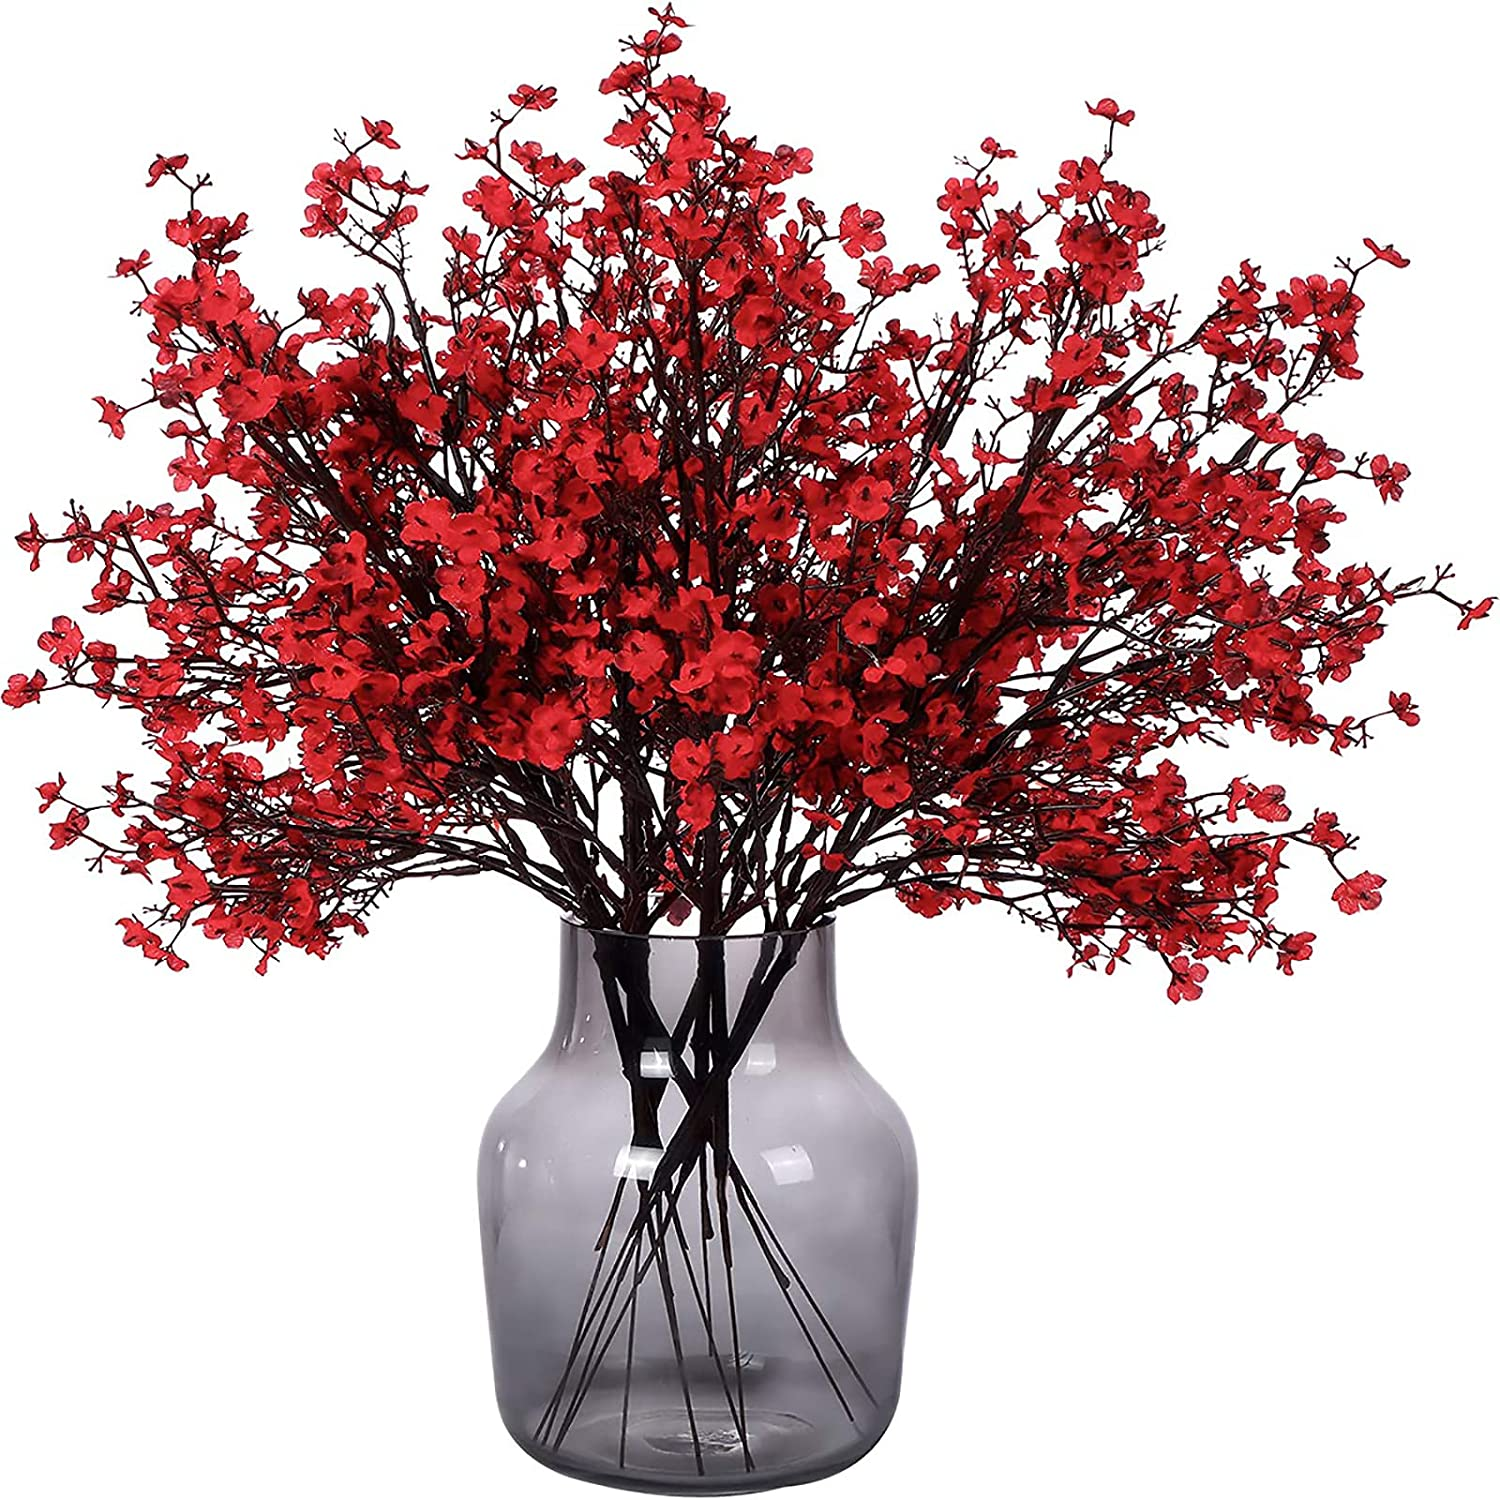 Momkids 6 Pcs Babys Breath Artificial Flowers Bulk Real Touch Faux Gypsophila Bouquet Fake Plastic Silk Flowers for Home Kitchen Bedroom Festival Wedding Party Decor(Red)